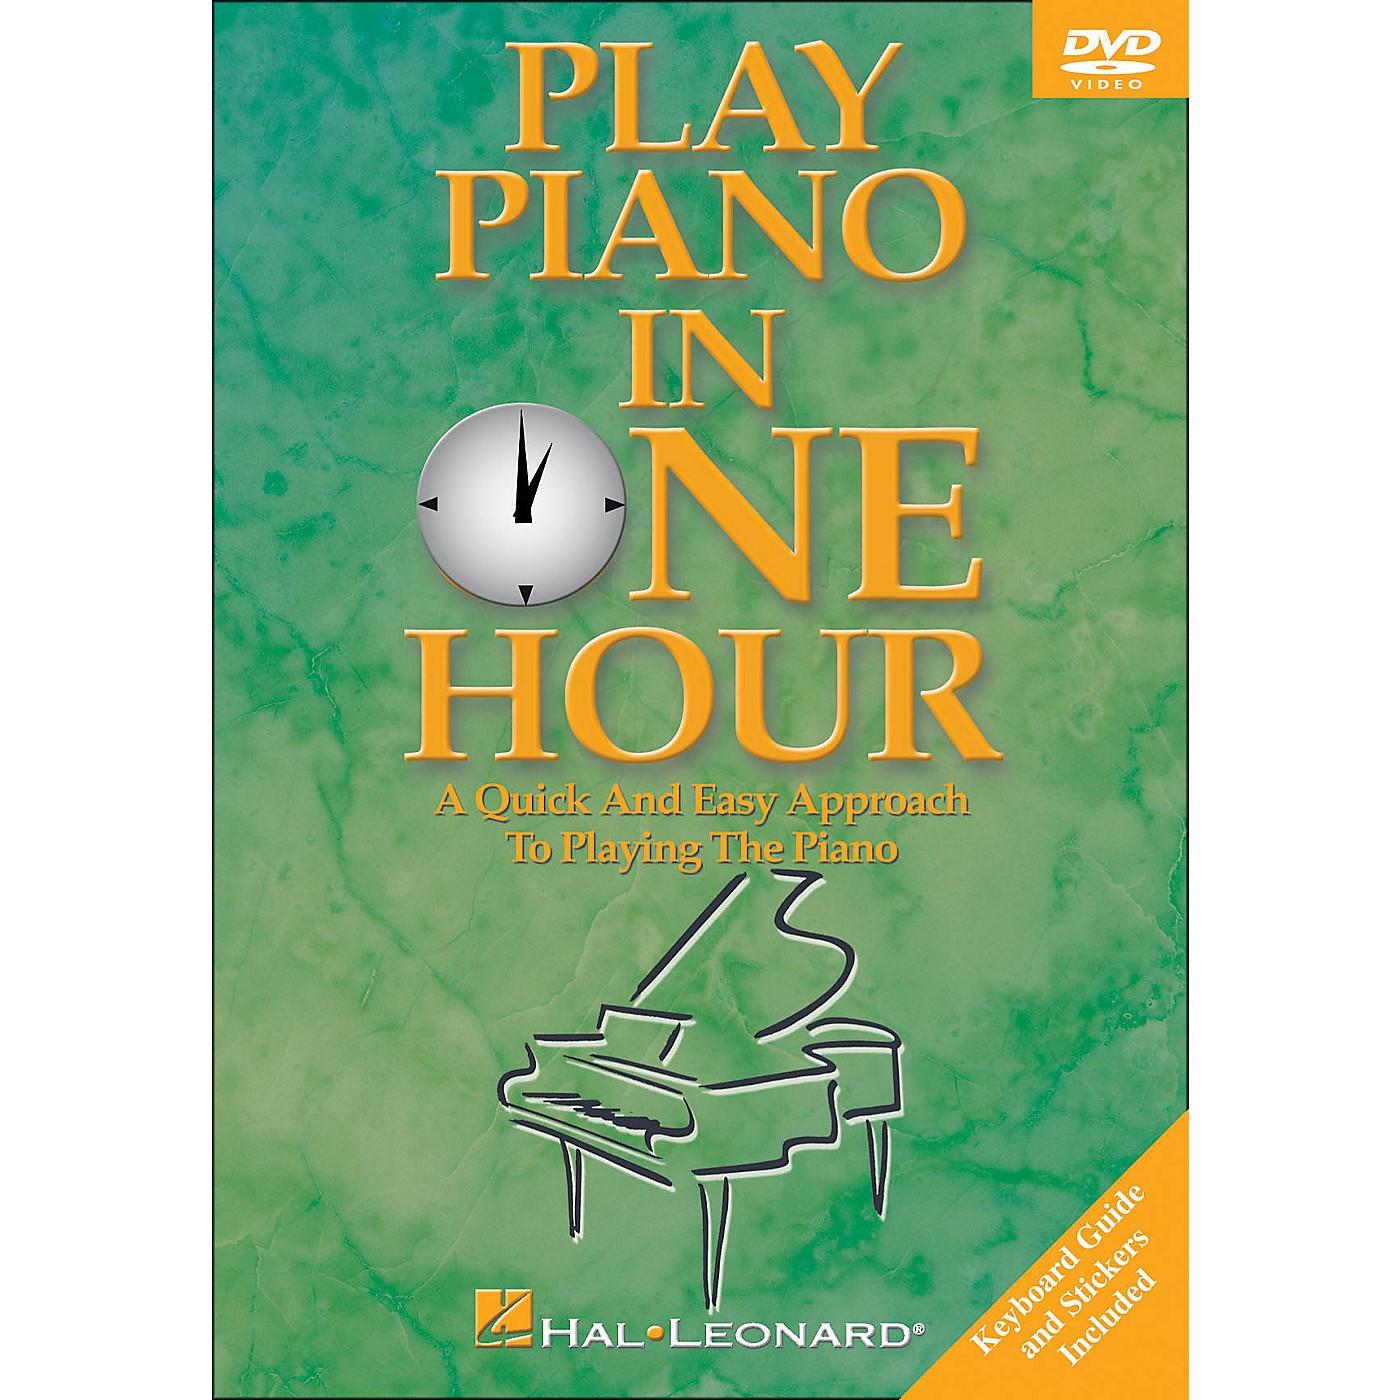 Hal Leonard Play Piano In One Hour! DVD thumbnail